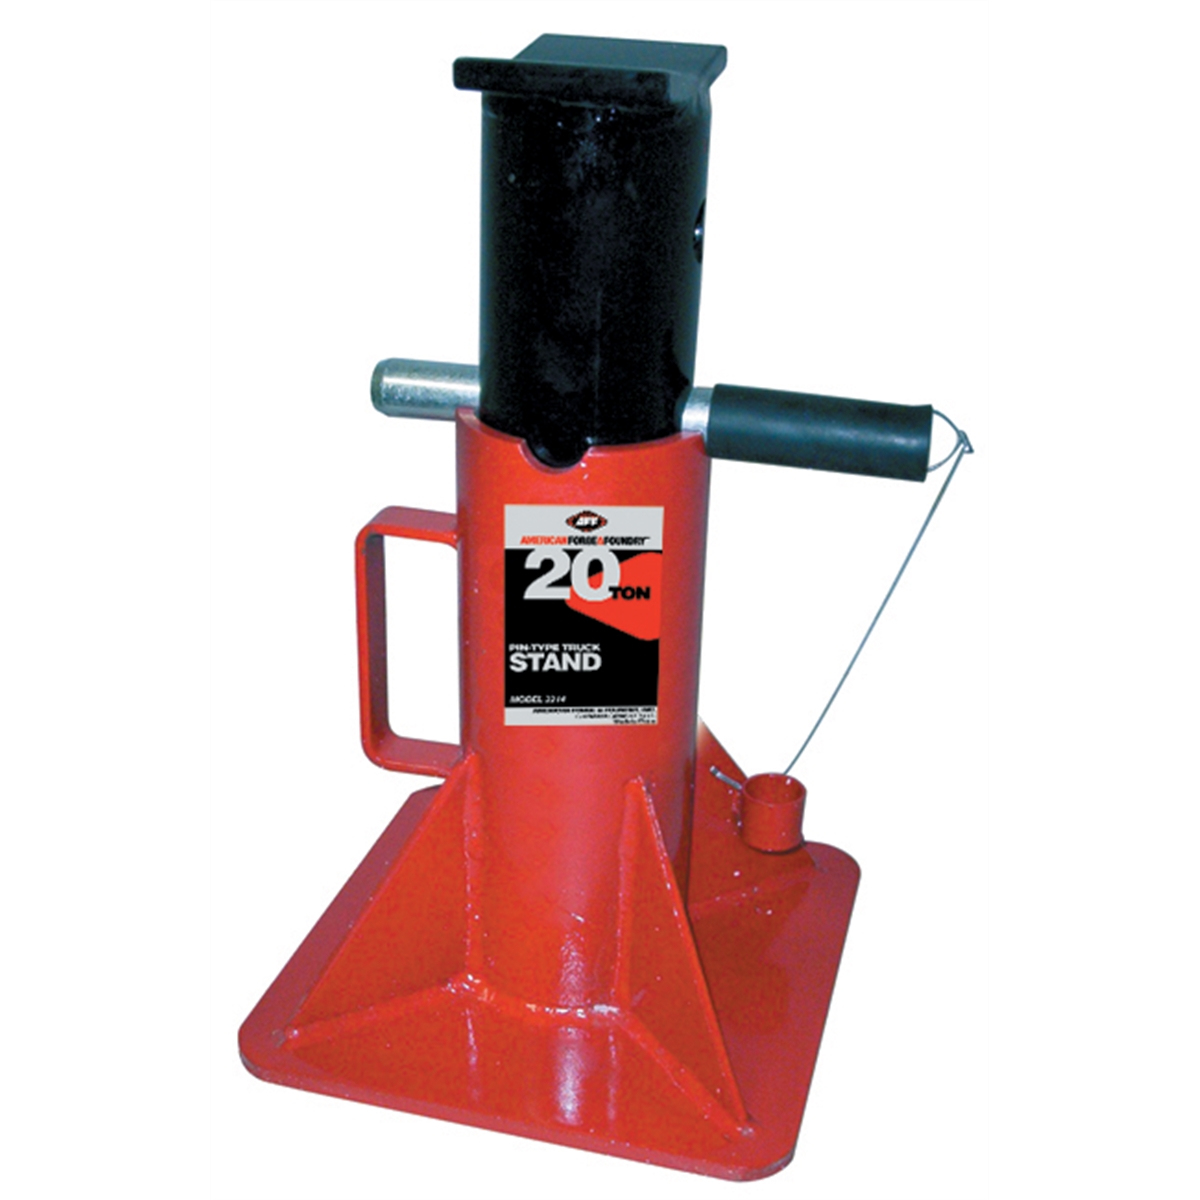 Jack Stand 20 Ton HD